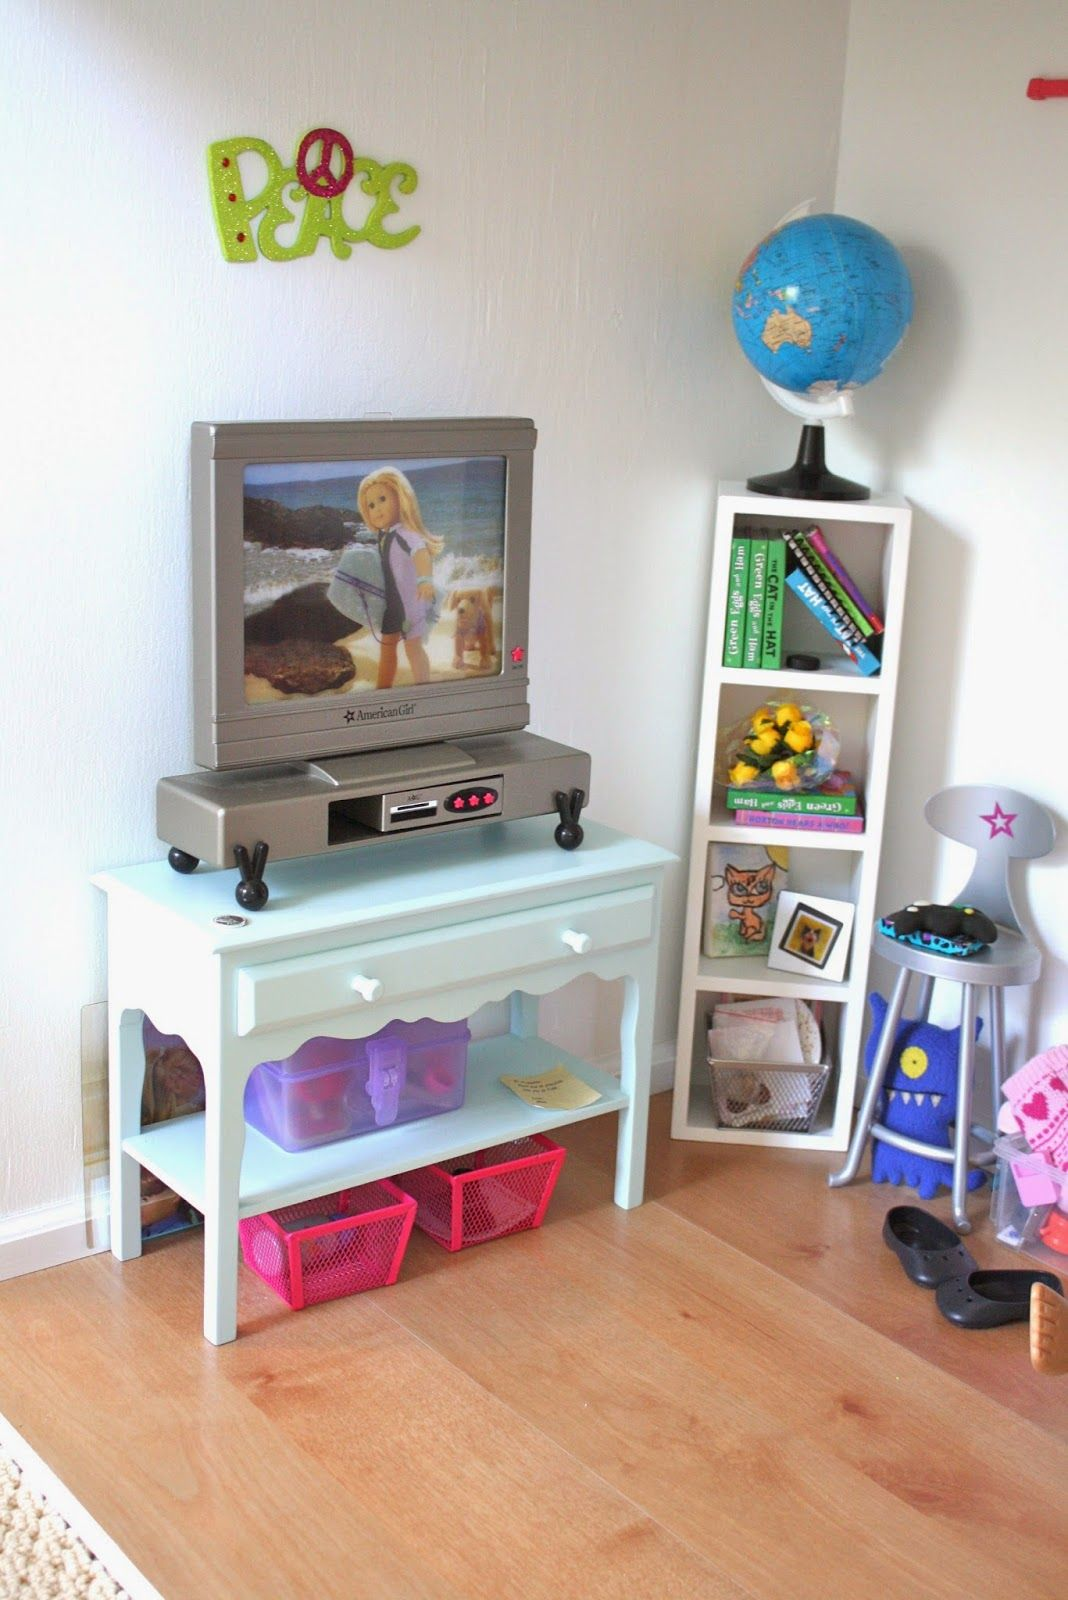 American girl dolls live simply beautiful lives